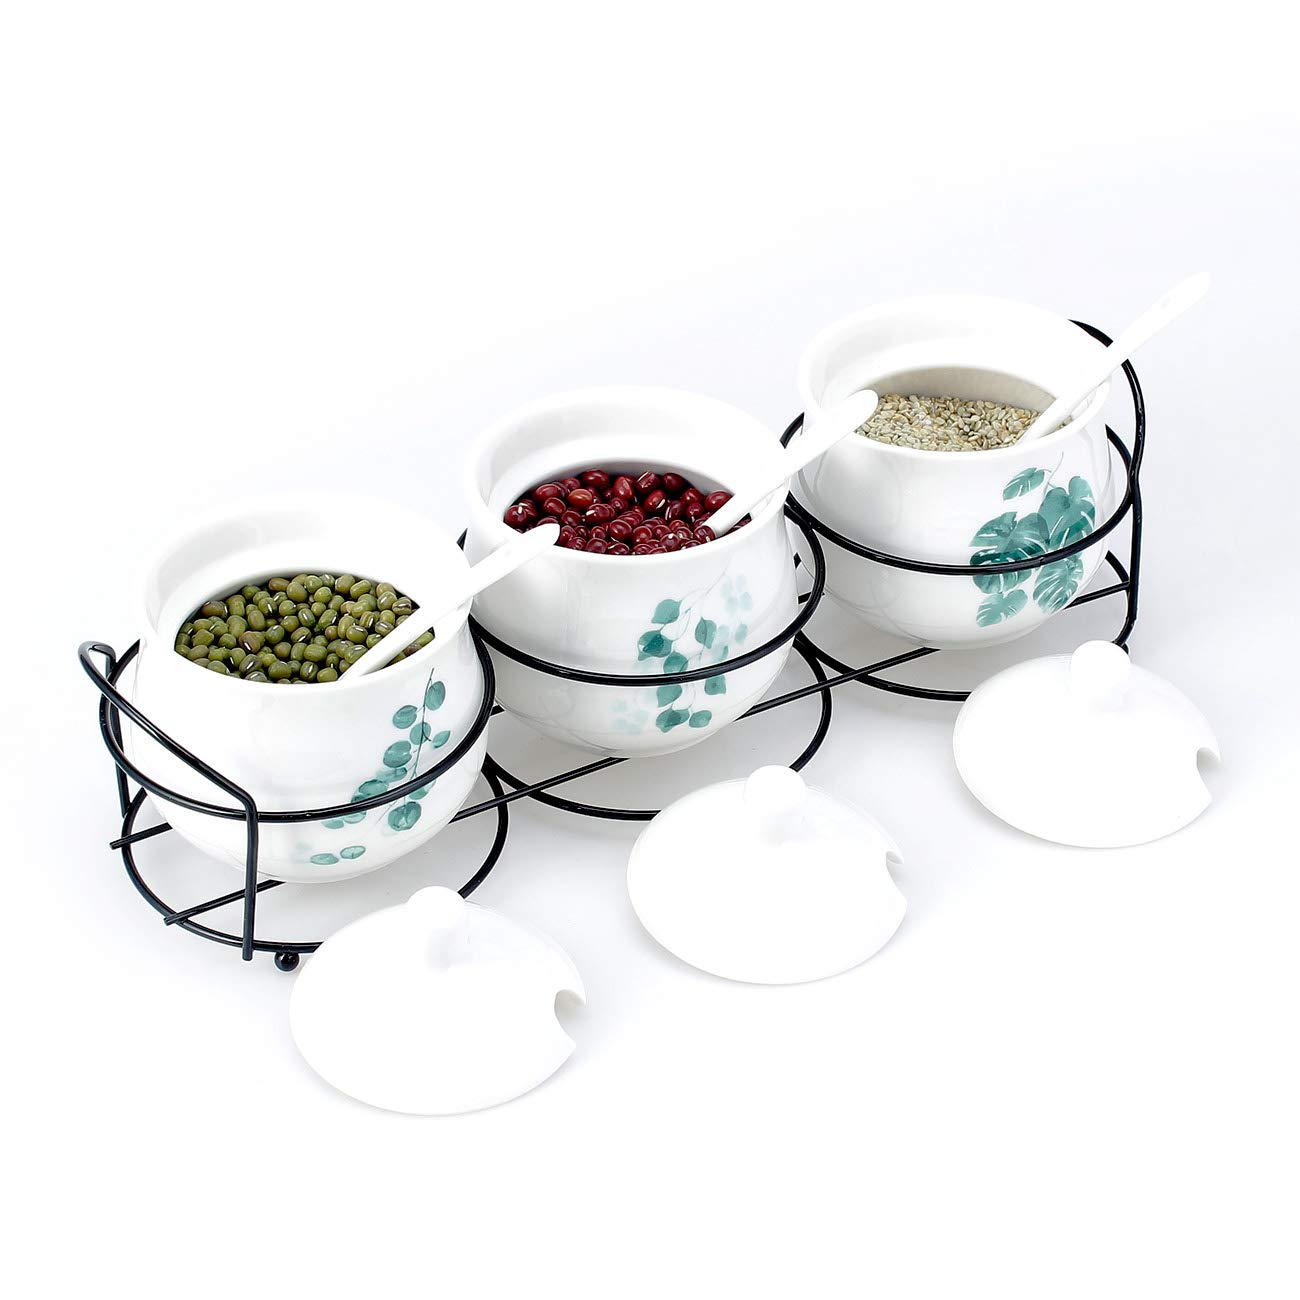 Tray Condiment Pots w//Serving Spoons Set of 3 Black /& White Ceramic Floral Tree Motif 7-oz Spice Jars